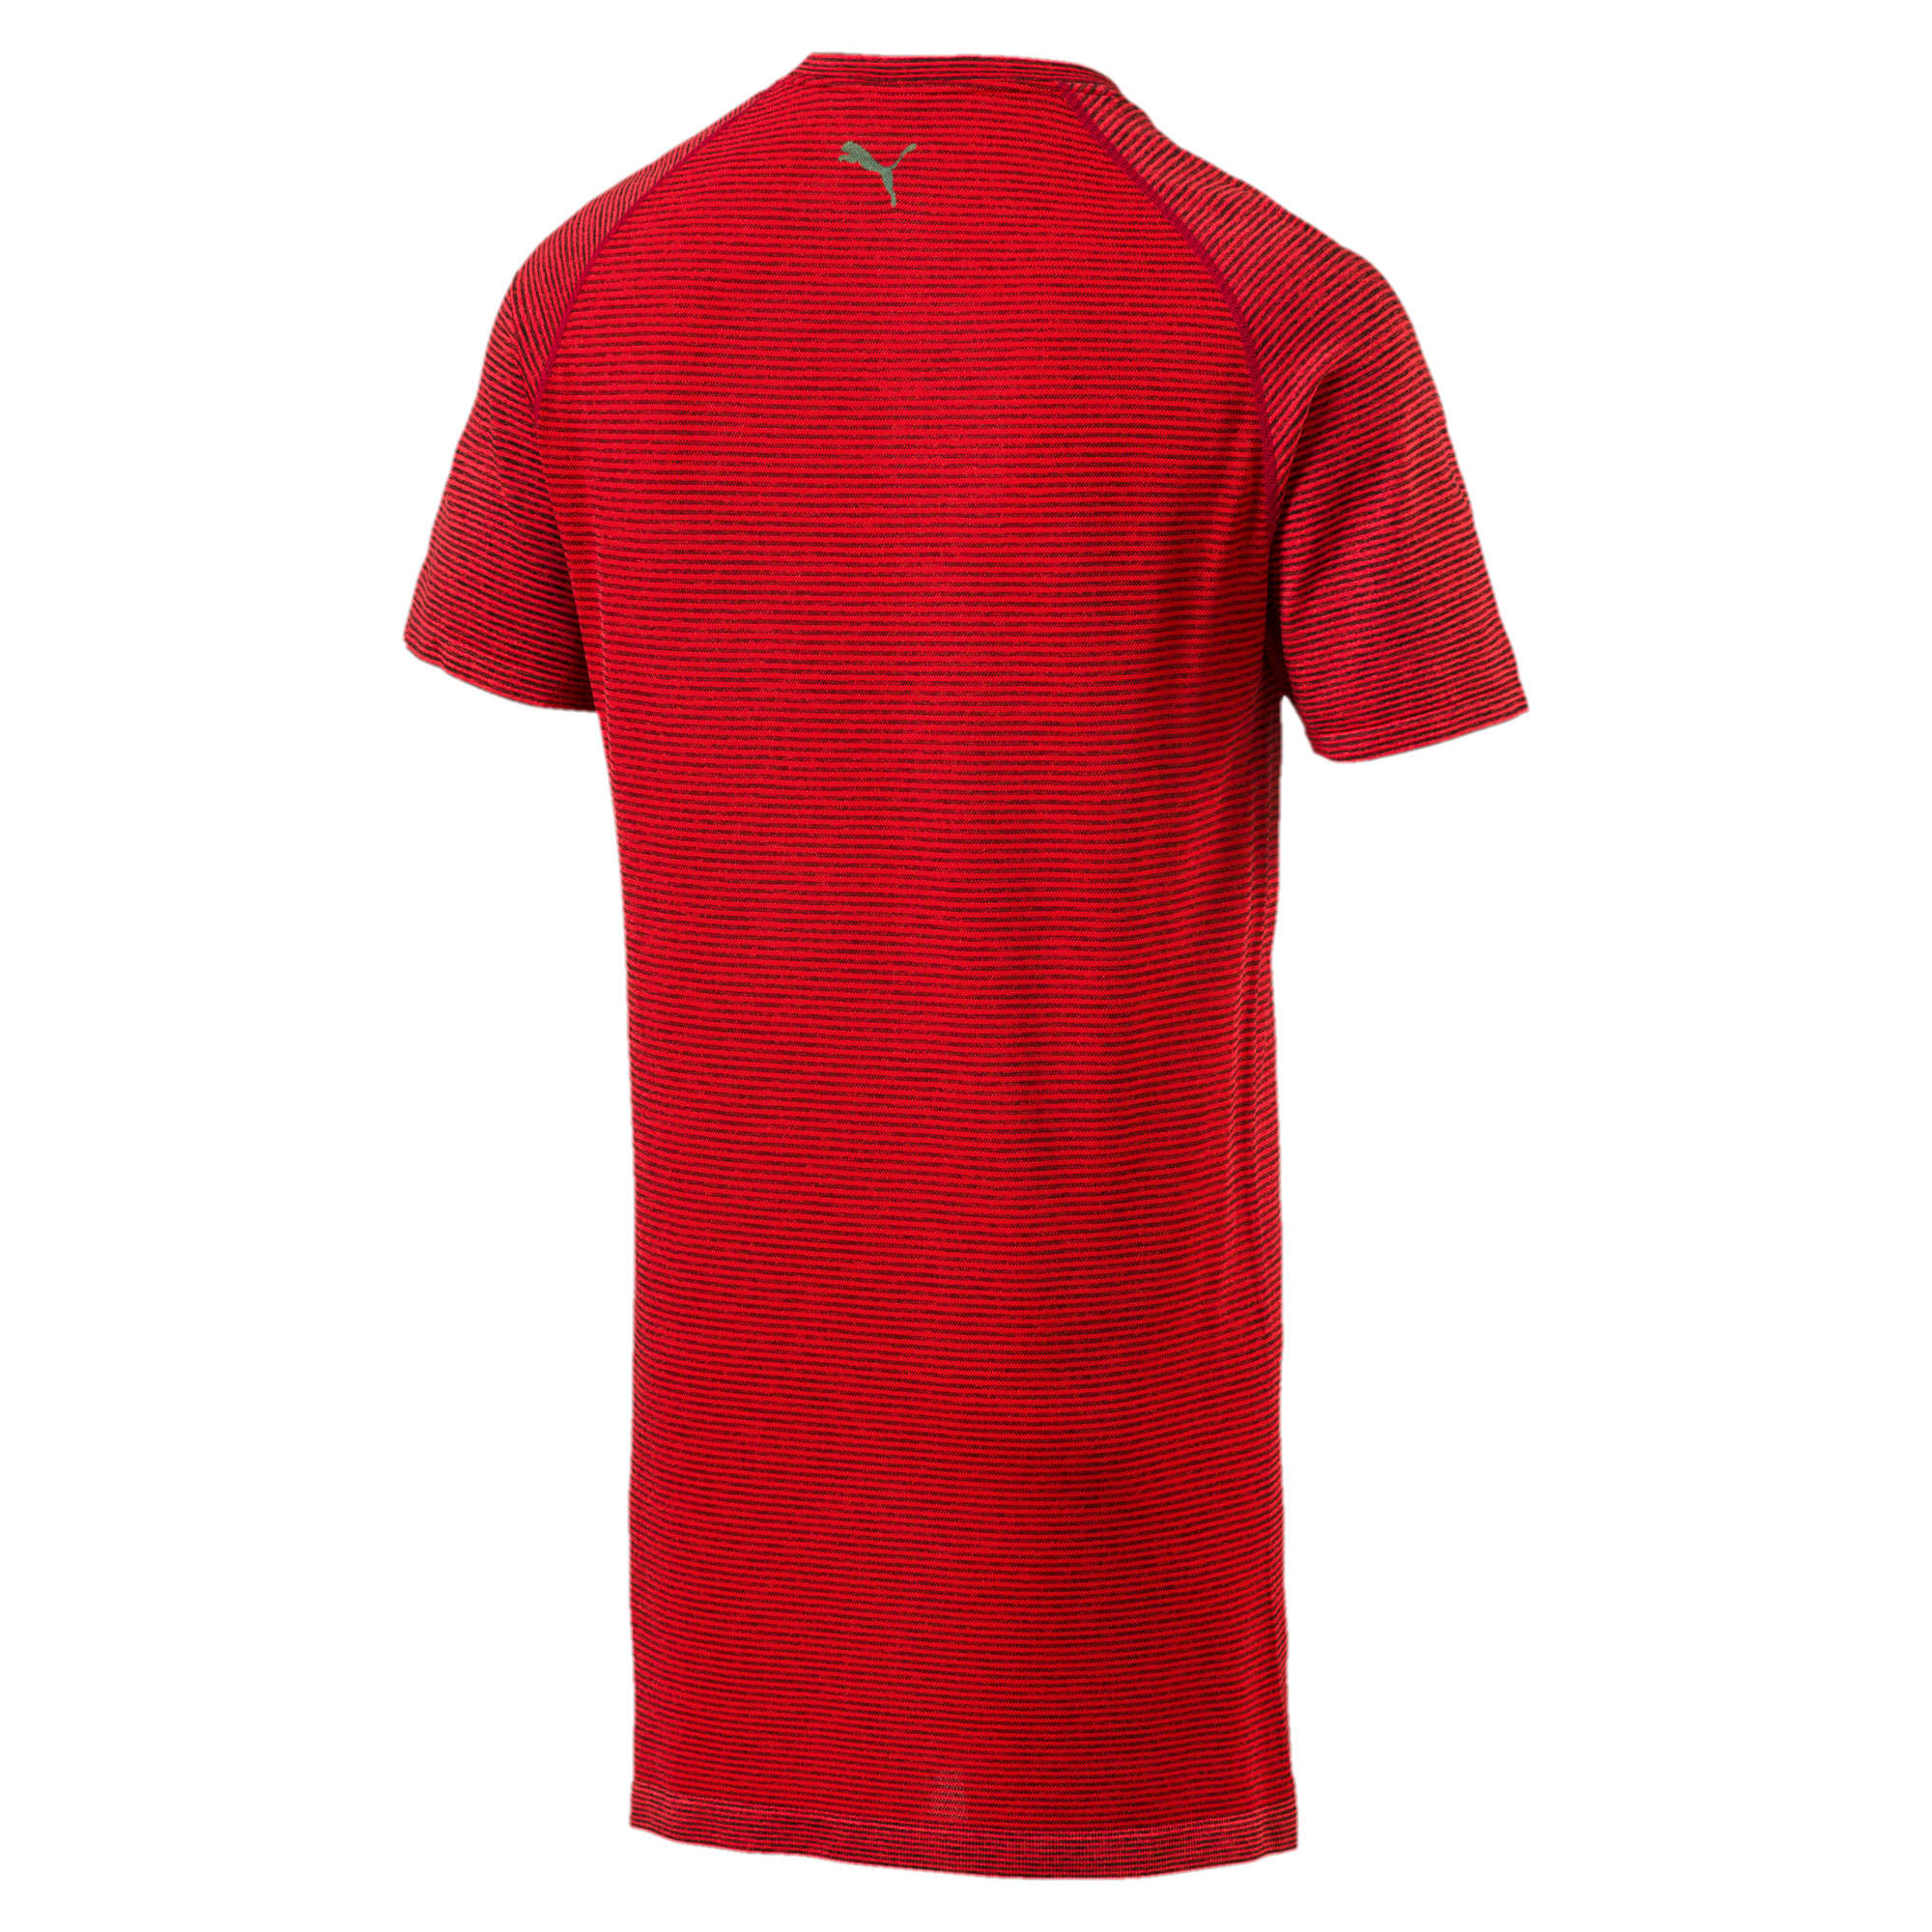 Thumbnail 2 of evoKNIT Men's T-Shirt, Flame Scarlet Heather, medium-IND